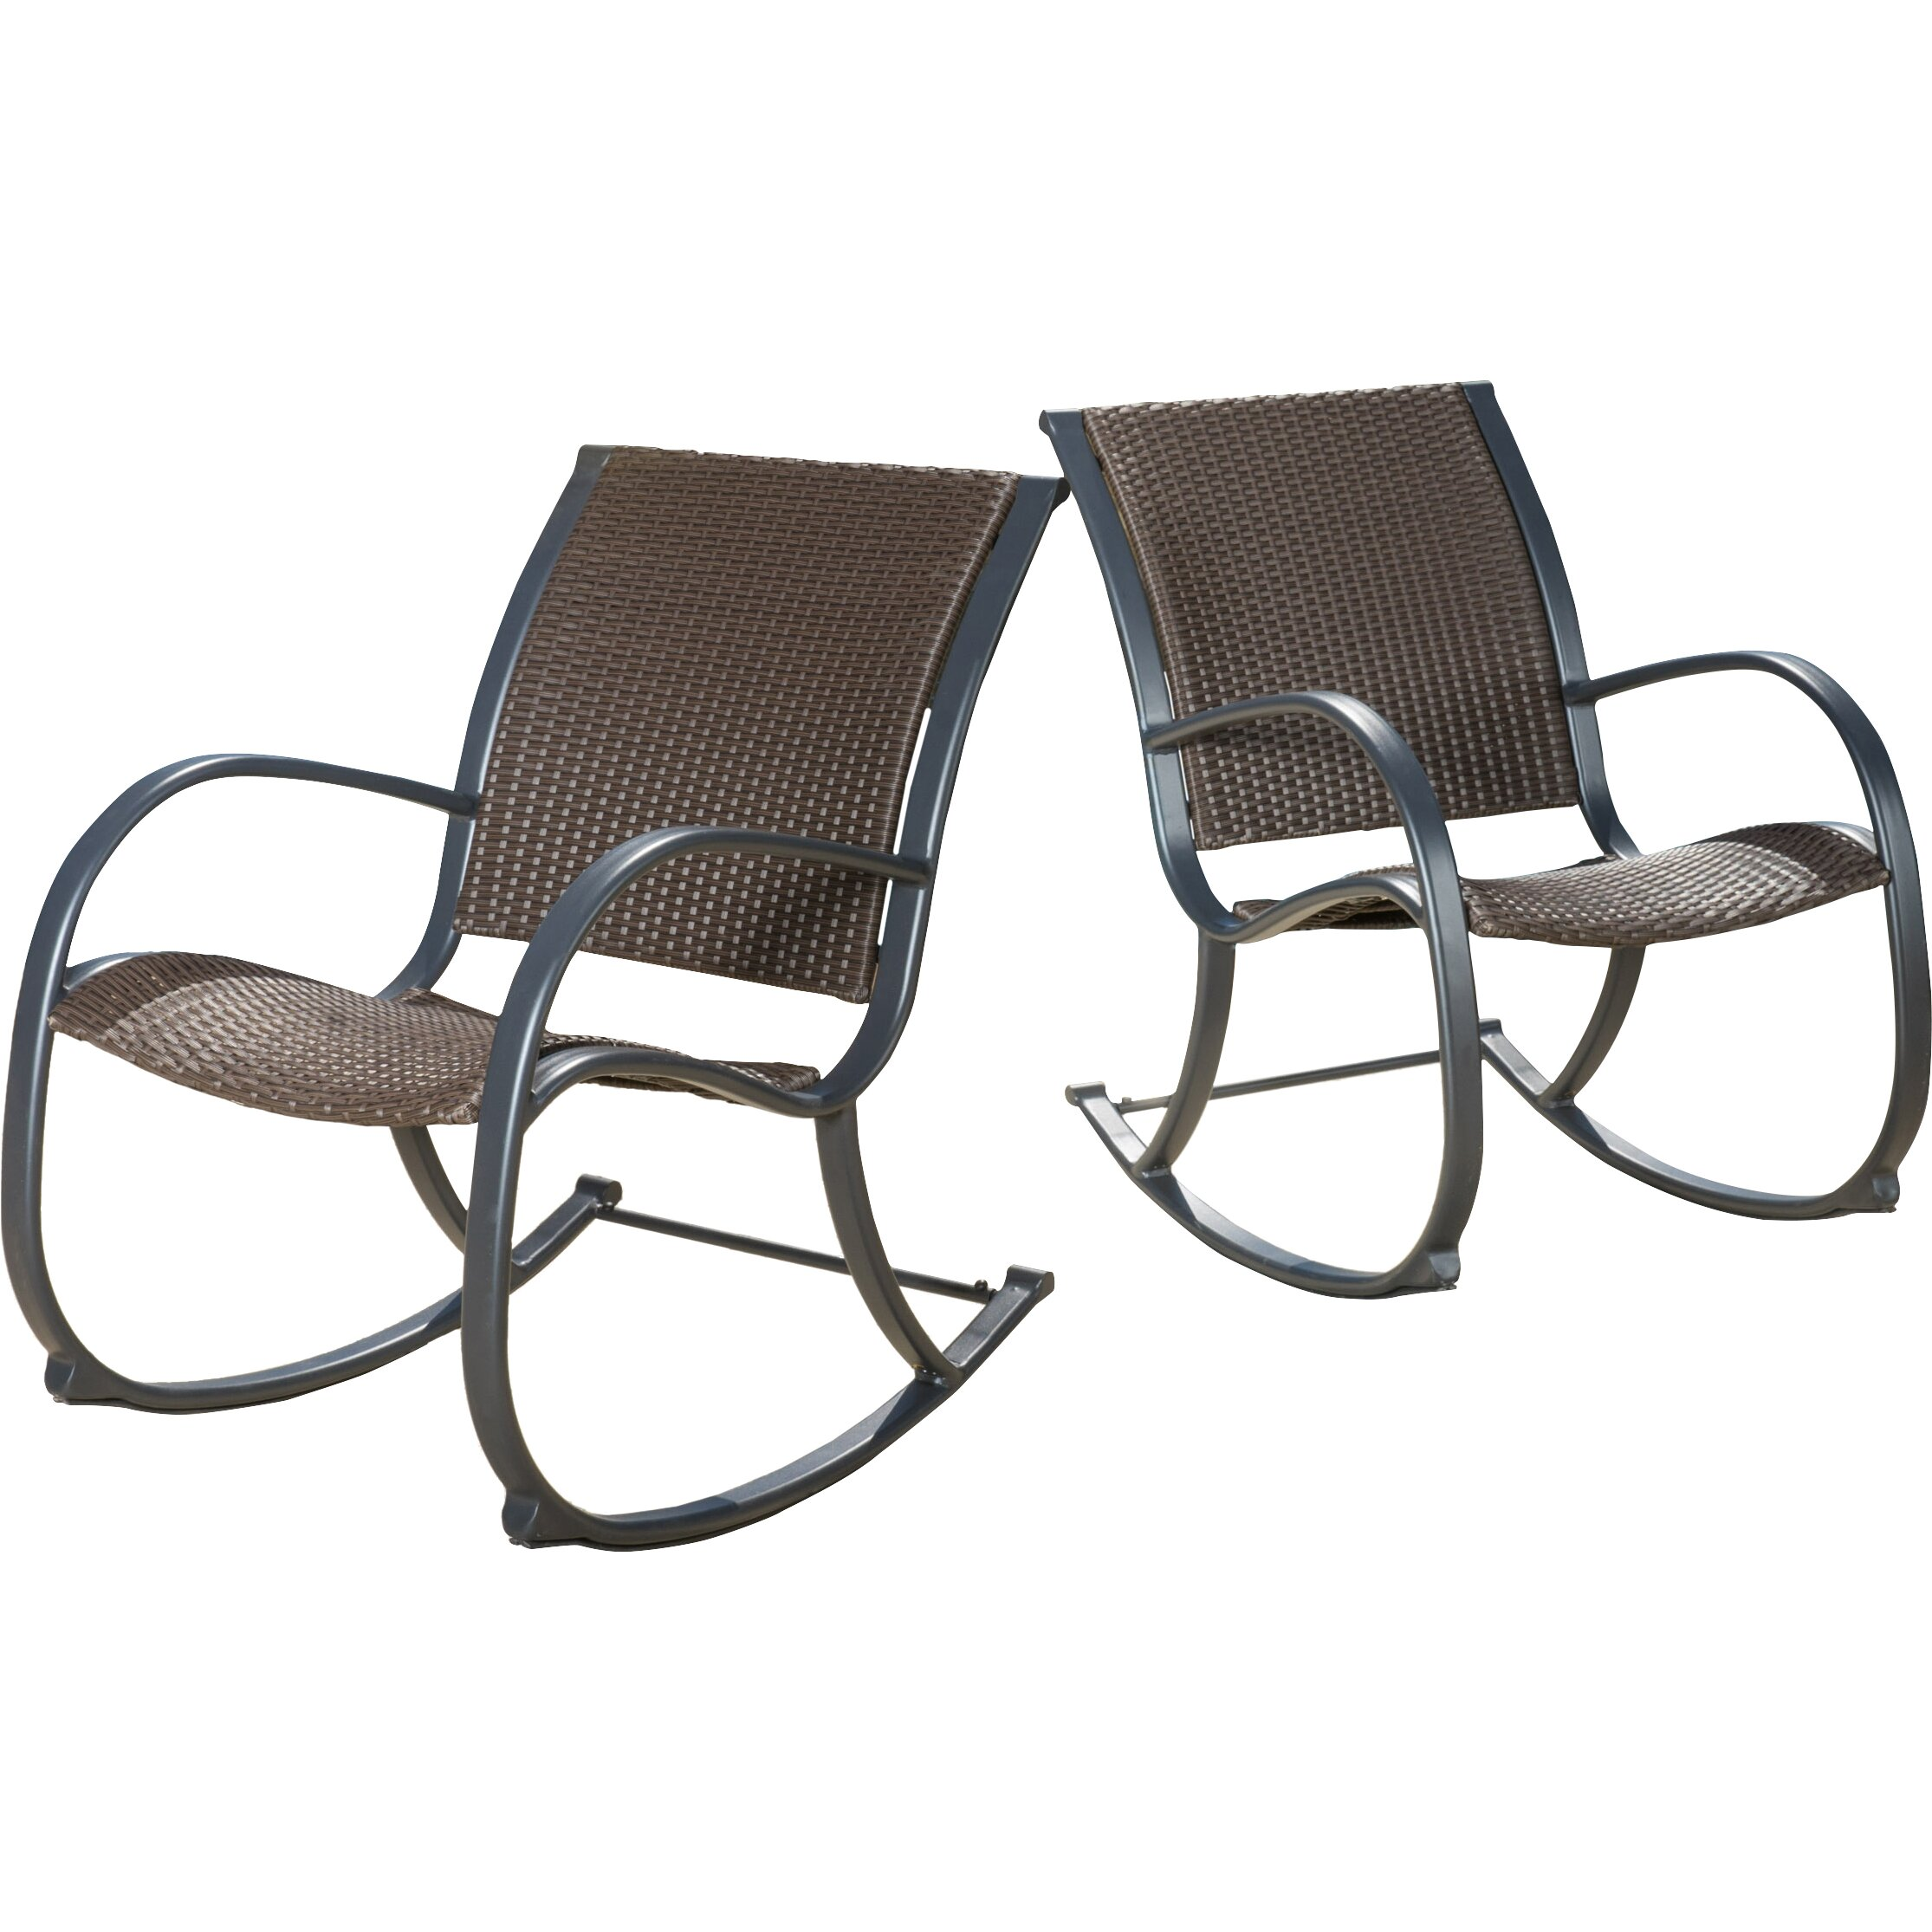 ... ... Patio Rocking Chairs & Gliders Home Loft Concepts SKU: FOME1382